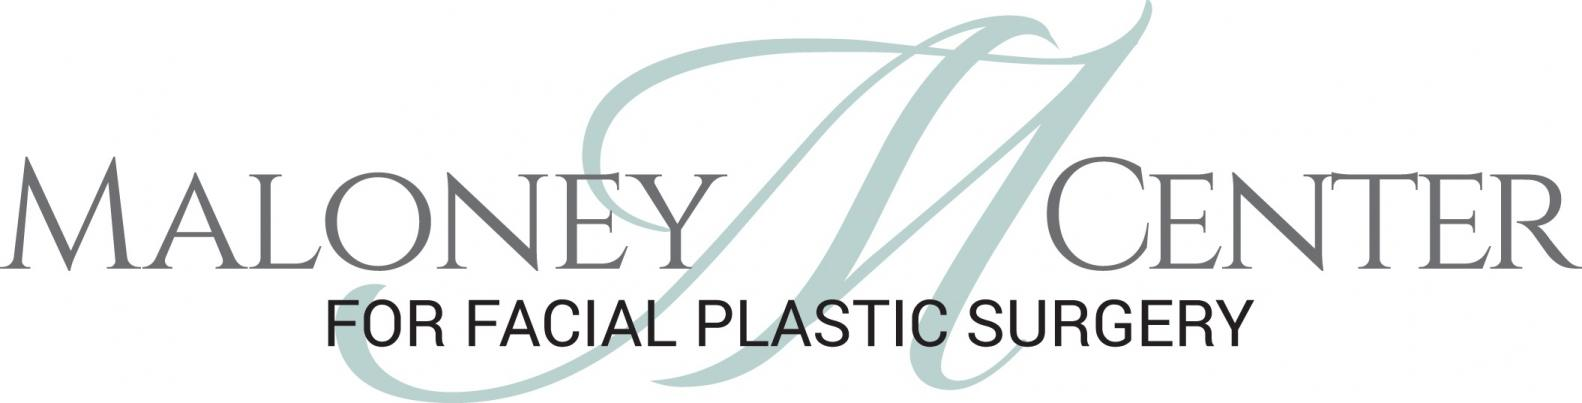 The Maloney Center for Facial Plastic Surgery Logo